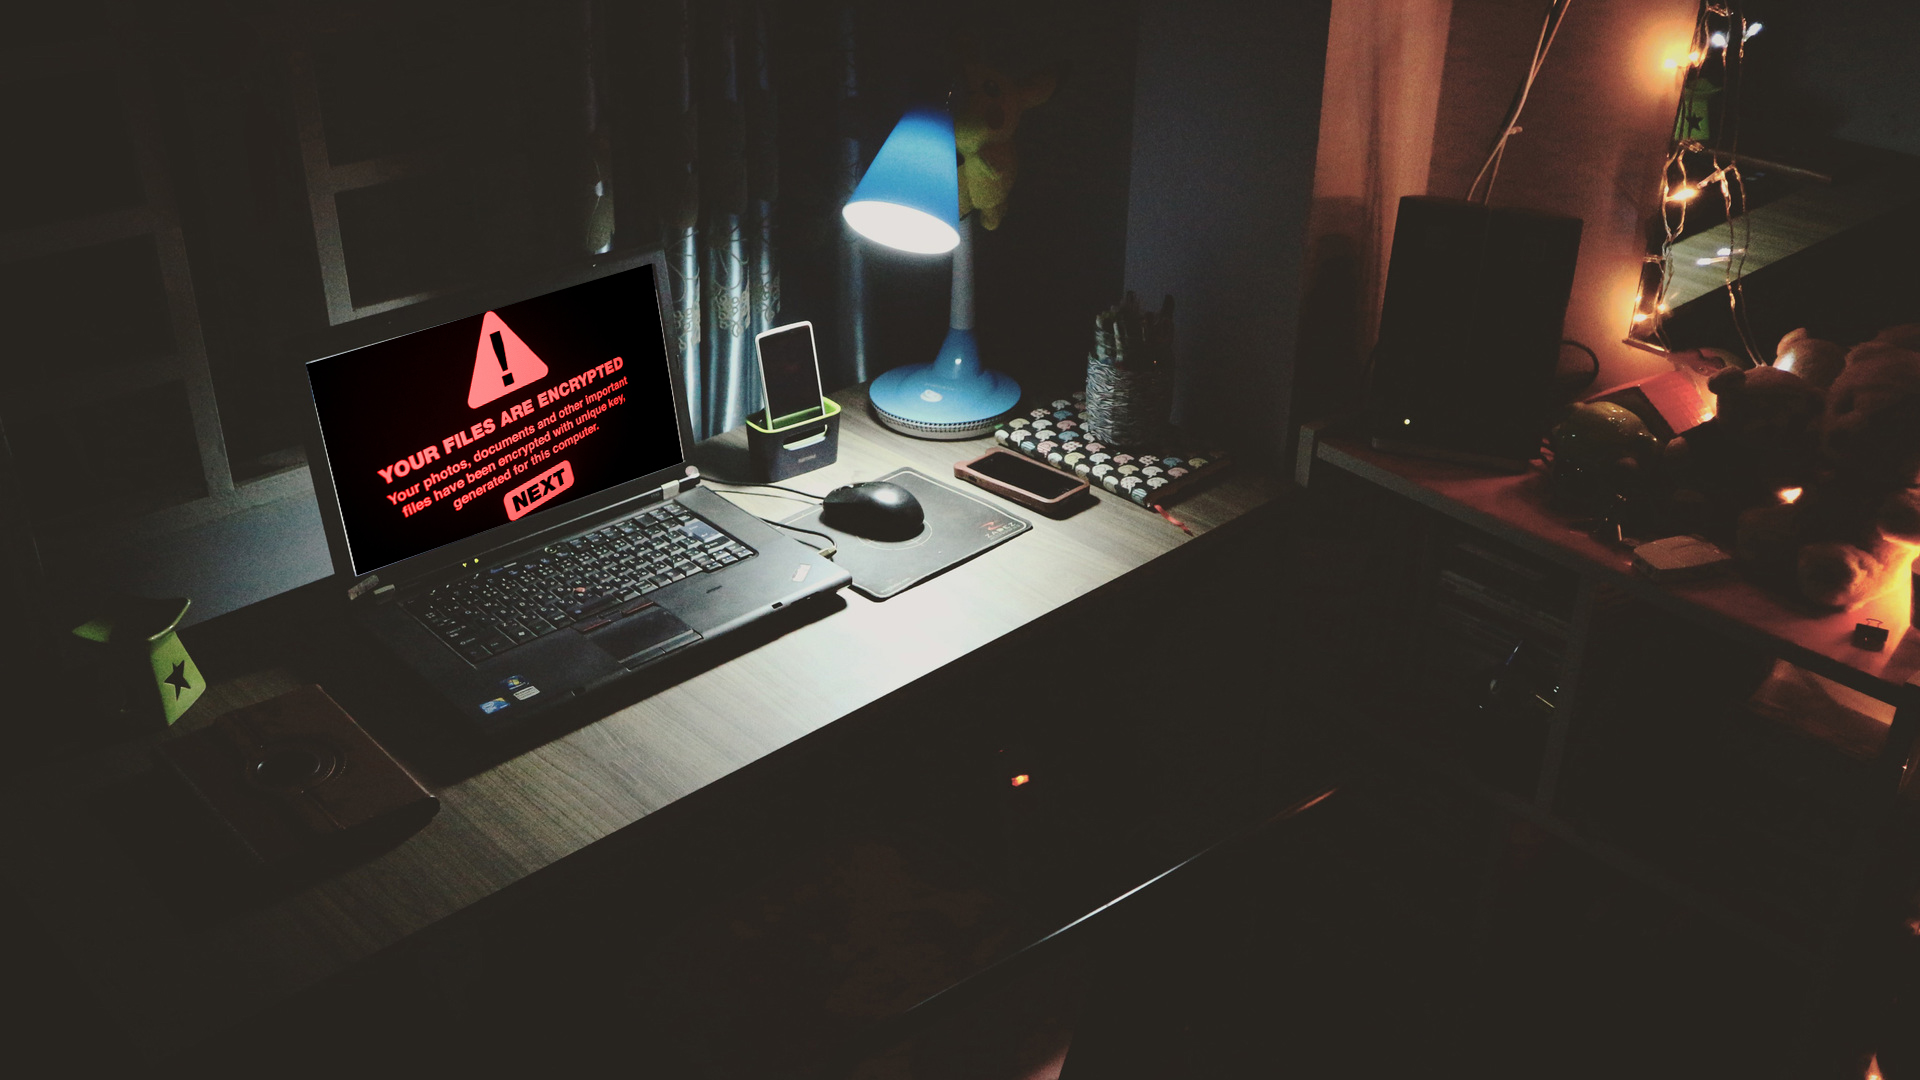 Four weapons for defending against sophisticated ransomware